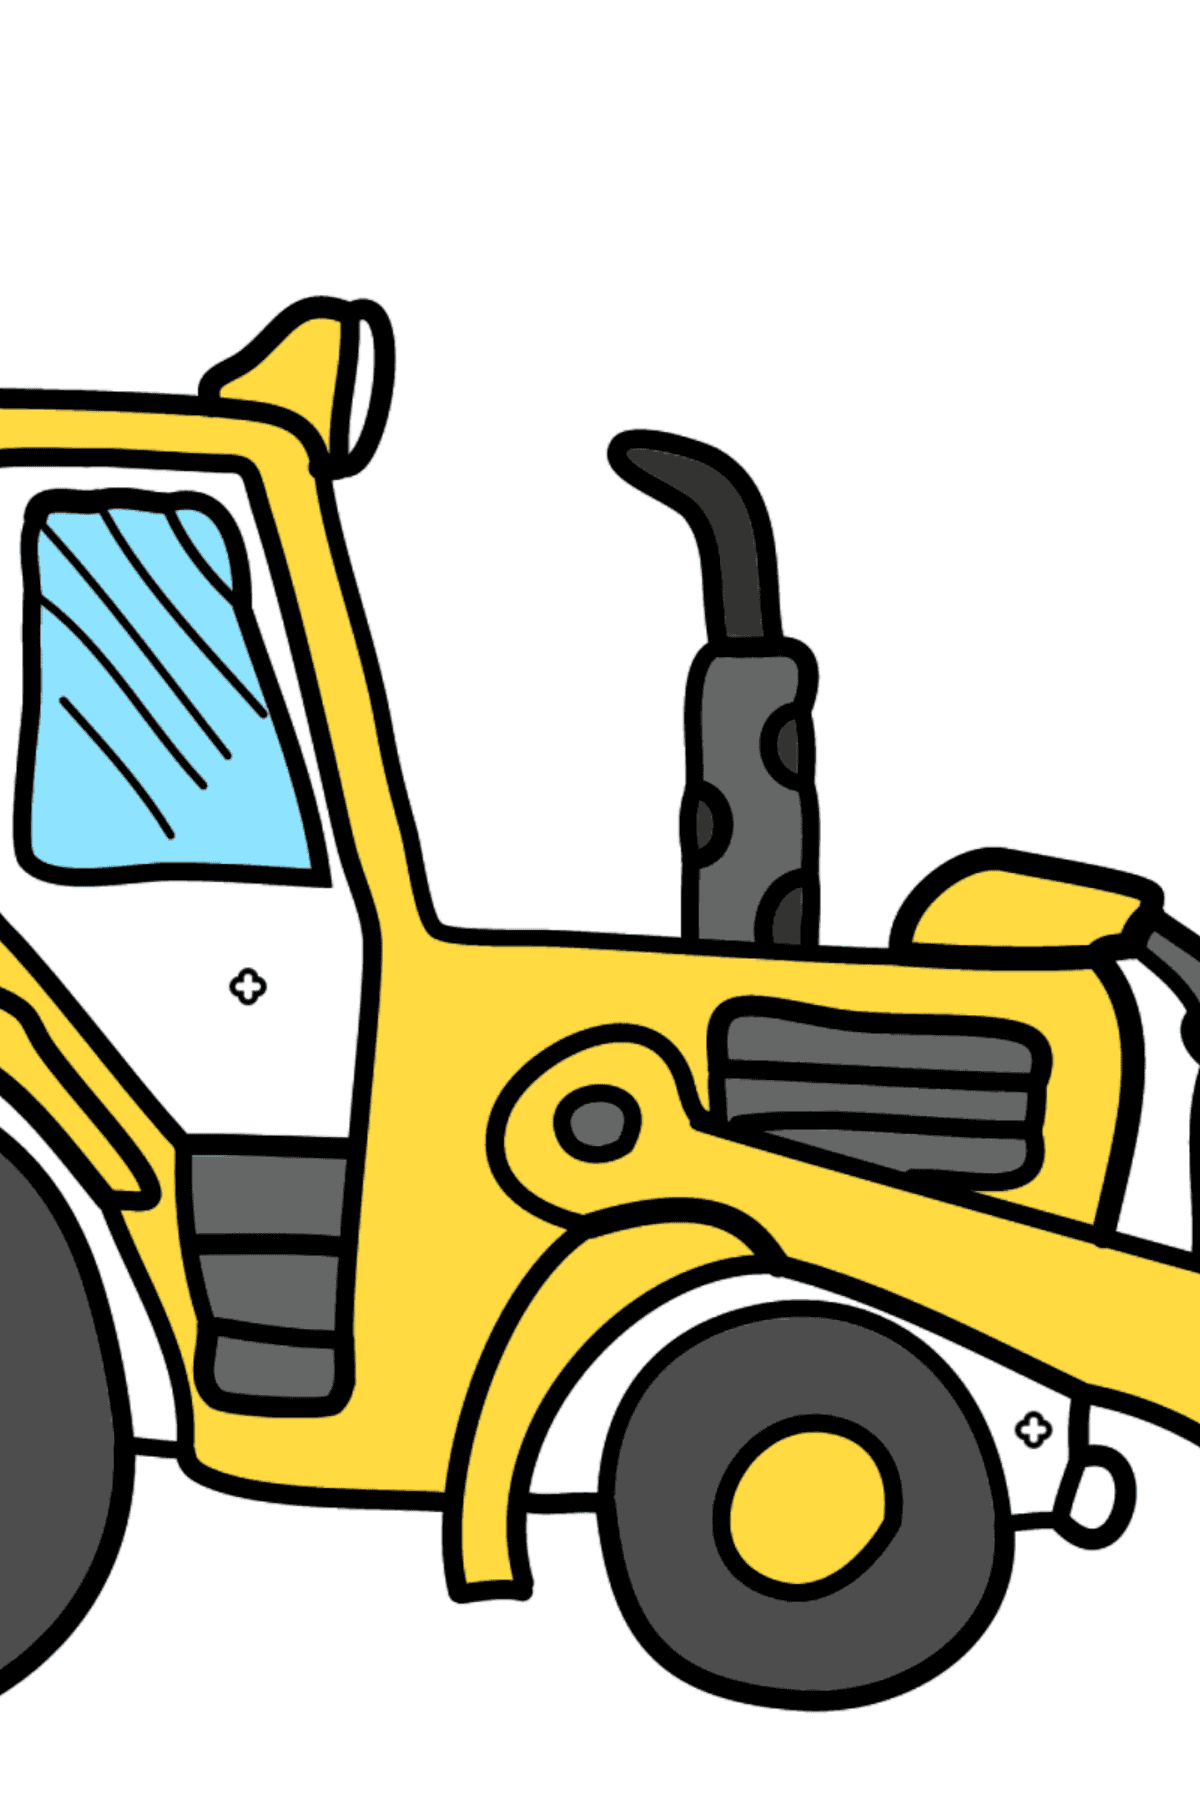 Coloring Page - A Yellow Tractor - Coloring by Symbols and Geometric Shapes for Kids